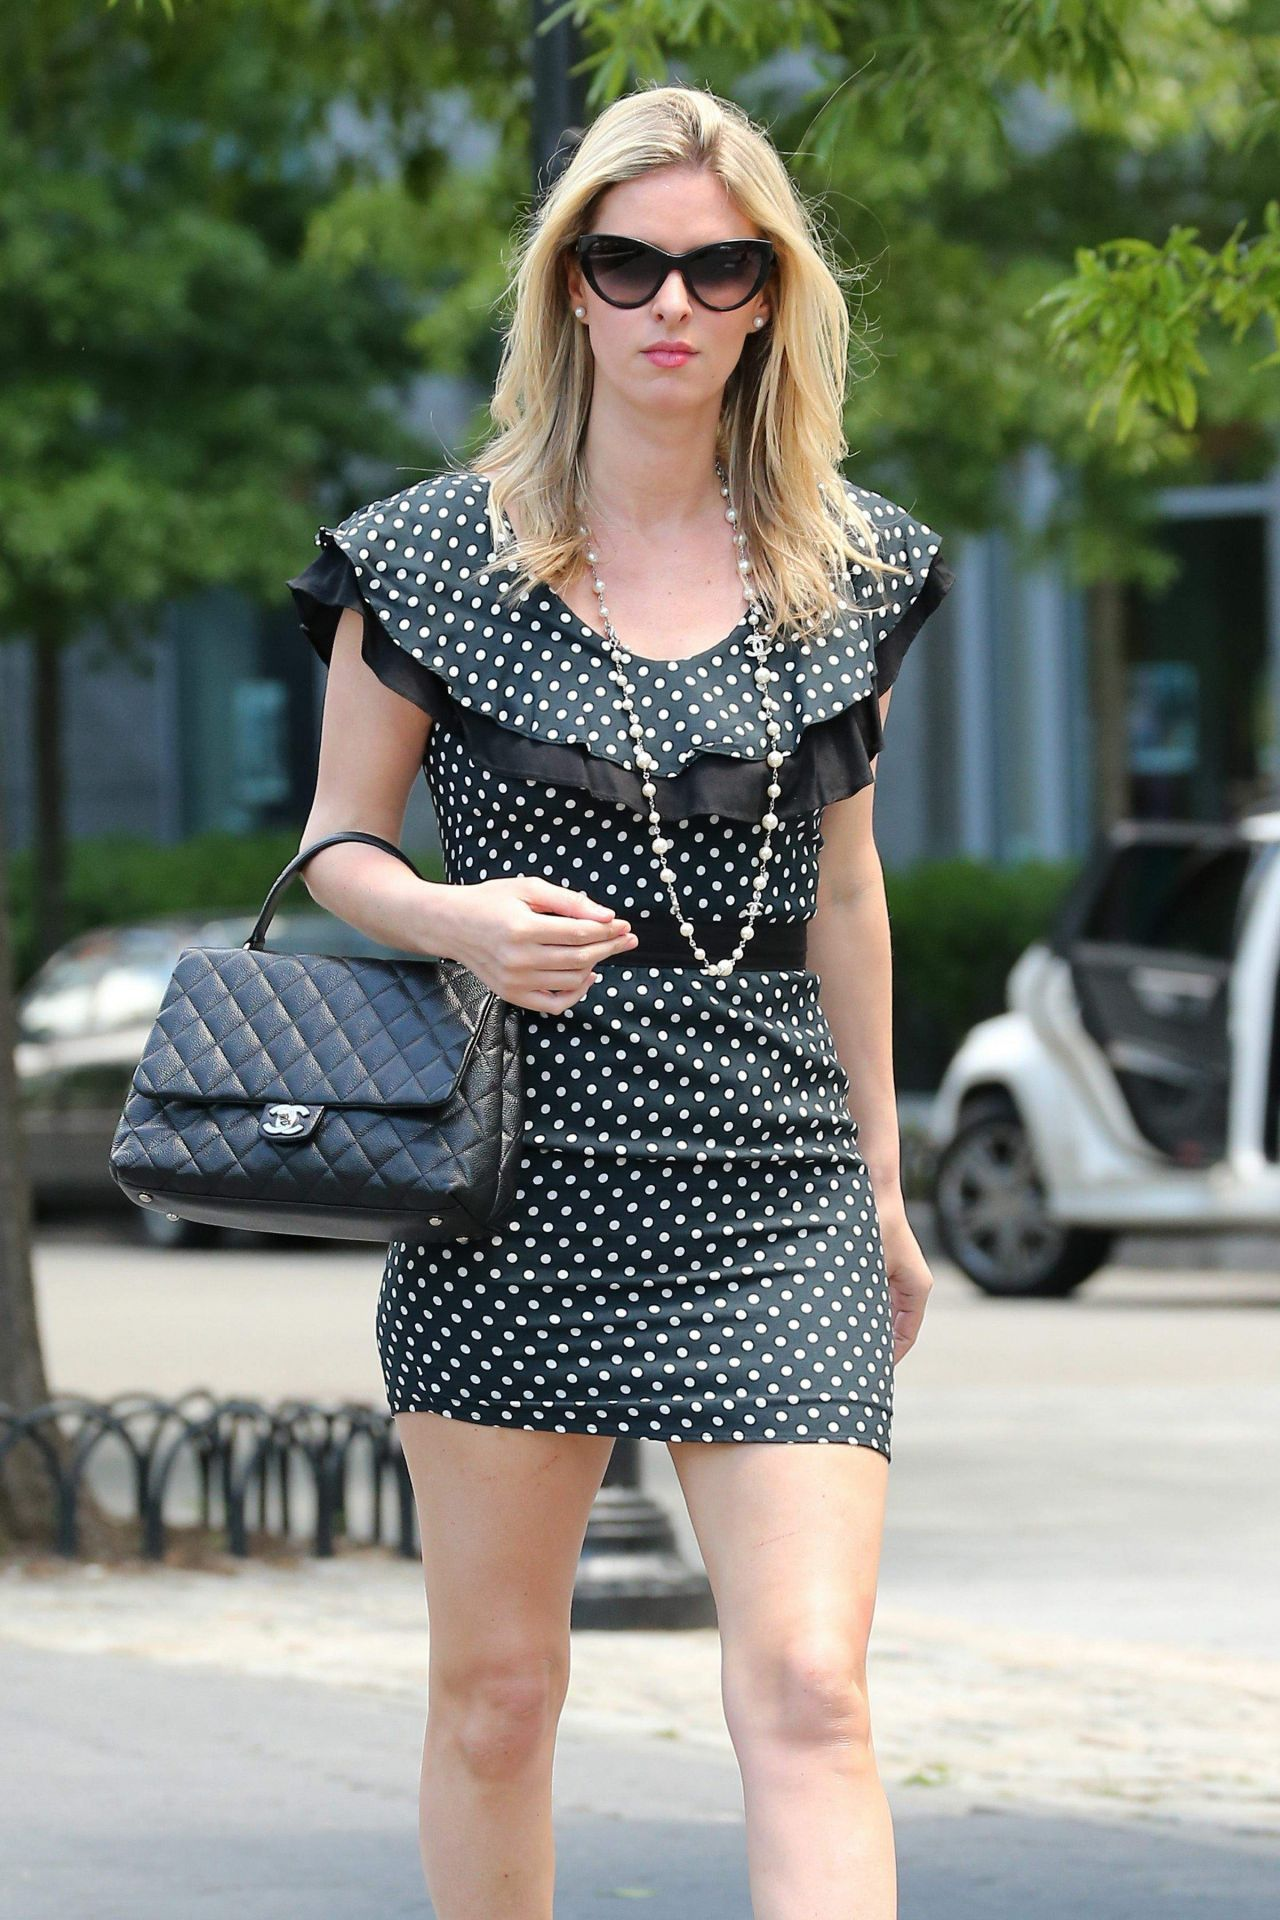 Nicky Hilton Out in New York City - May 2014